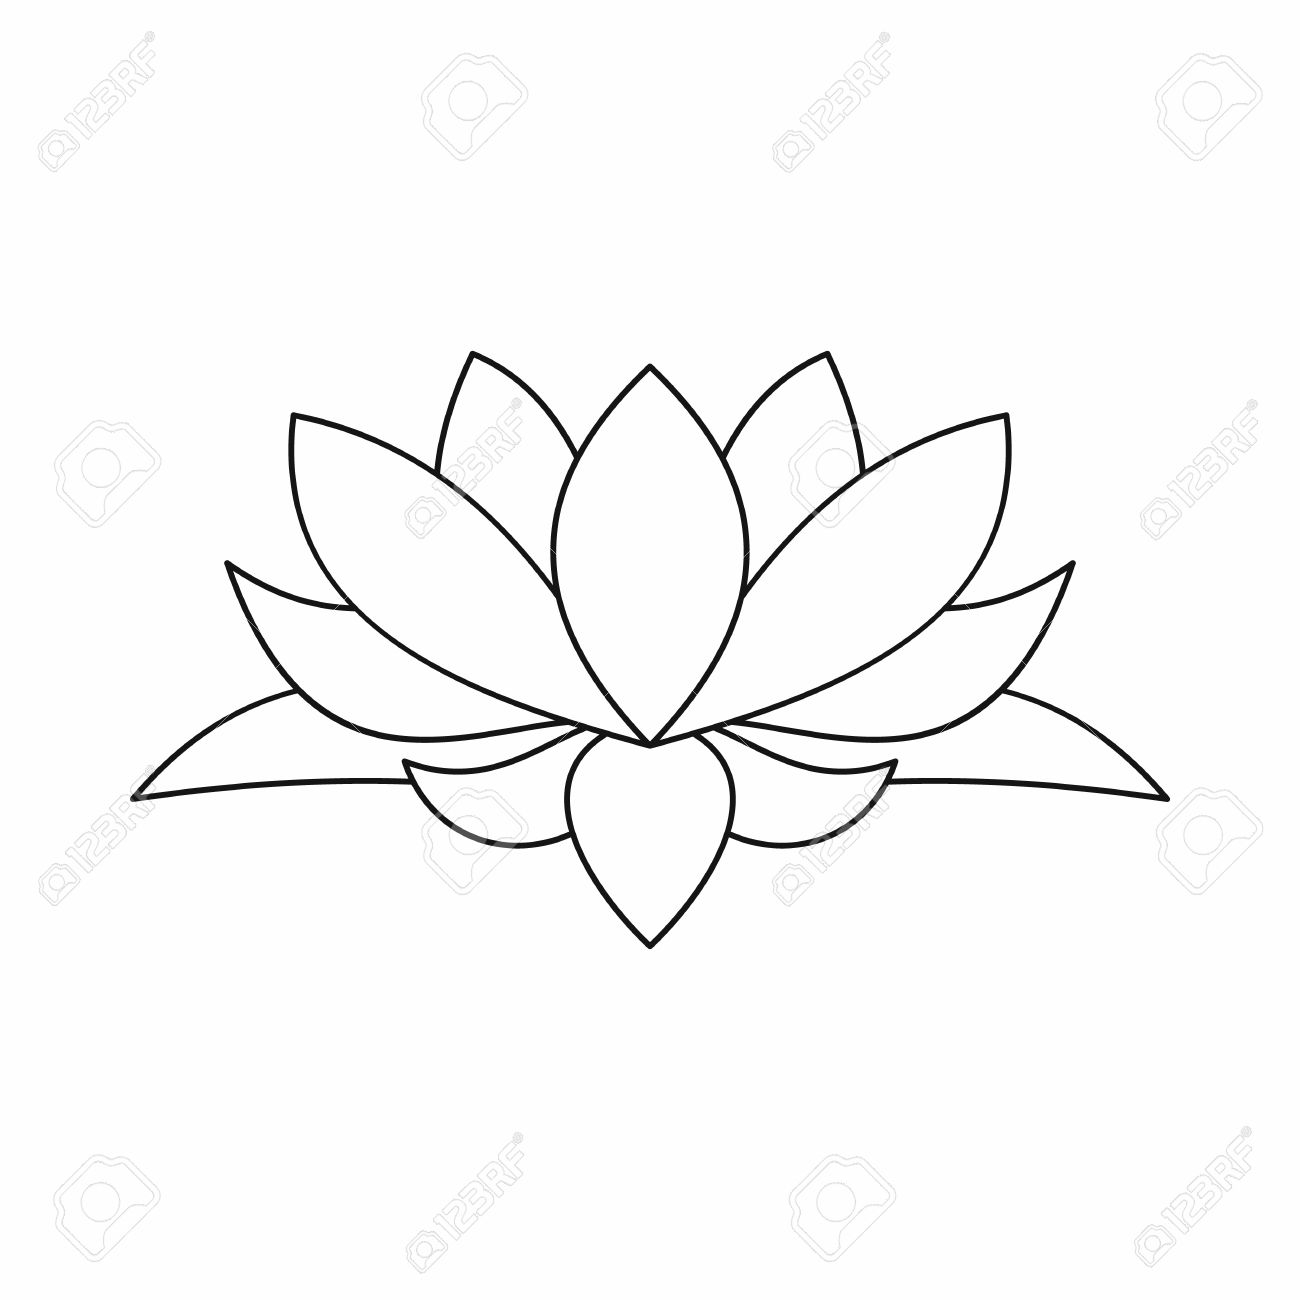 Lotus flower drawing outline at getdrawings free for personal 1300x1300 lotus flower drawing outline lotus flower line drawing free mightylinksfo